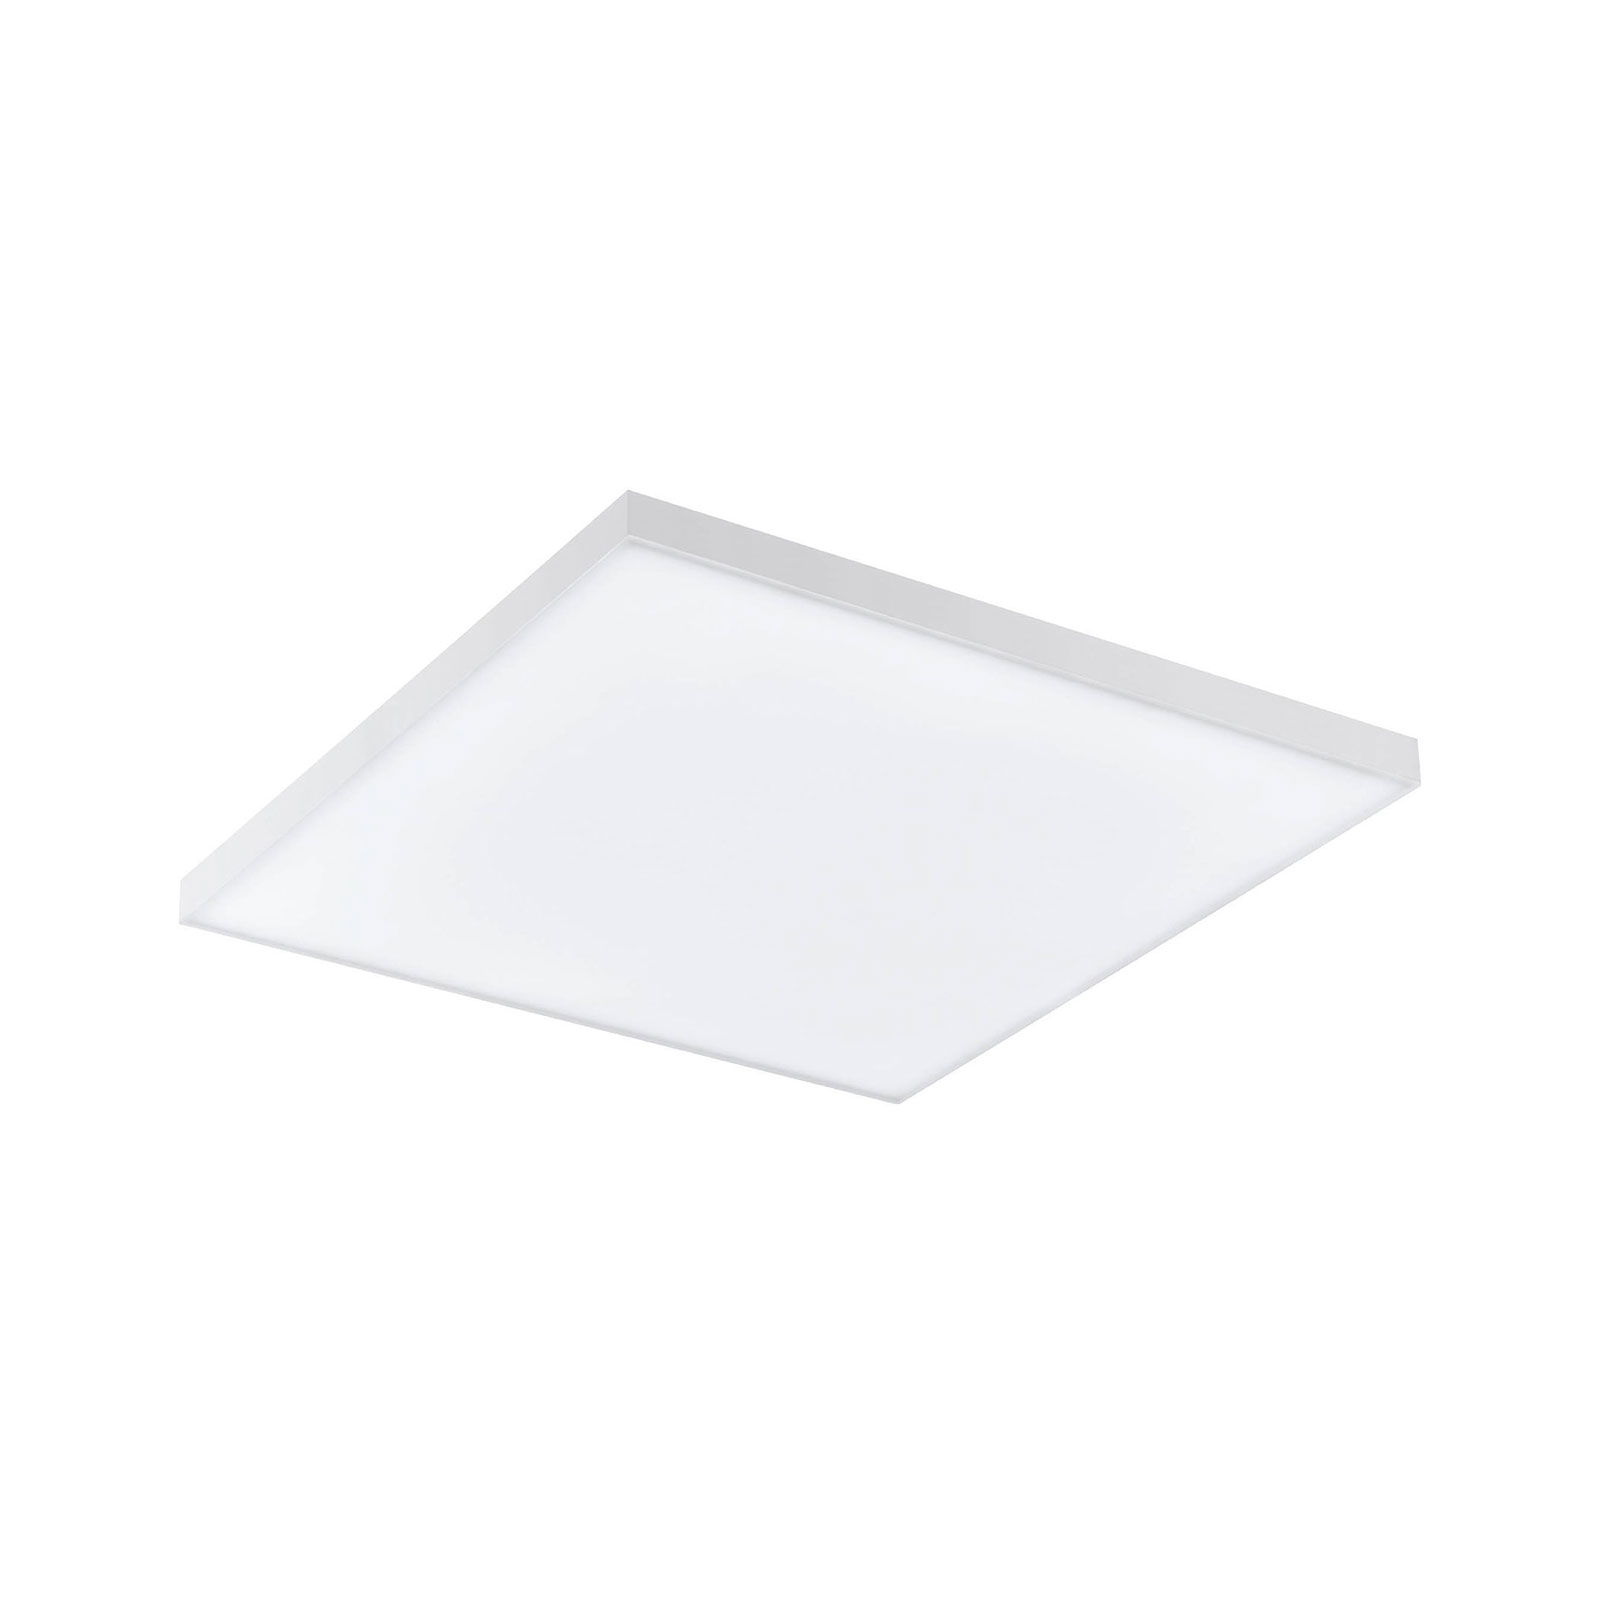 EGLO connect Turcona-C plafonnier LED 30x30 cm